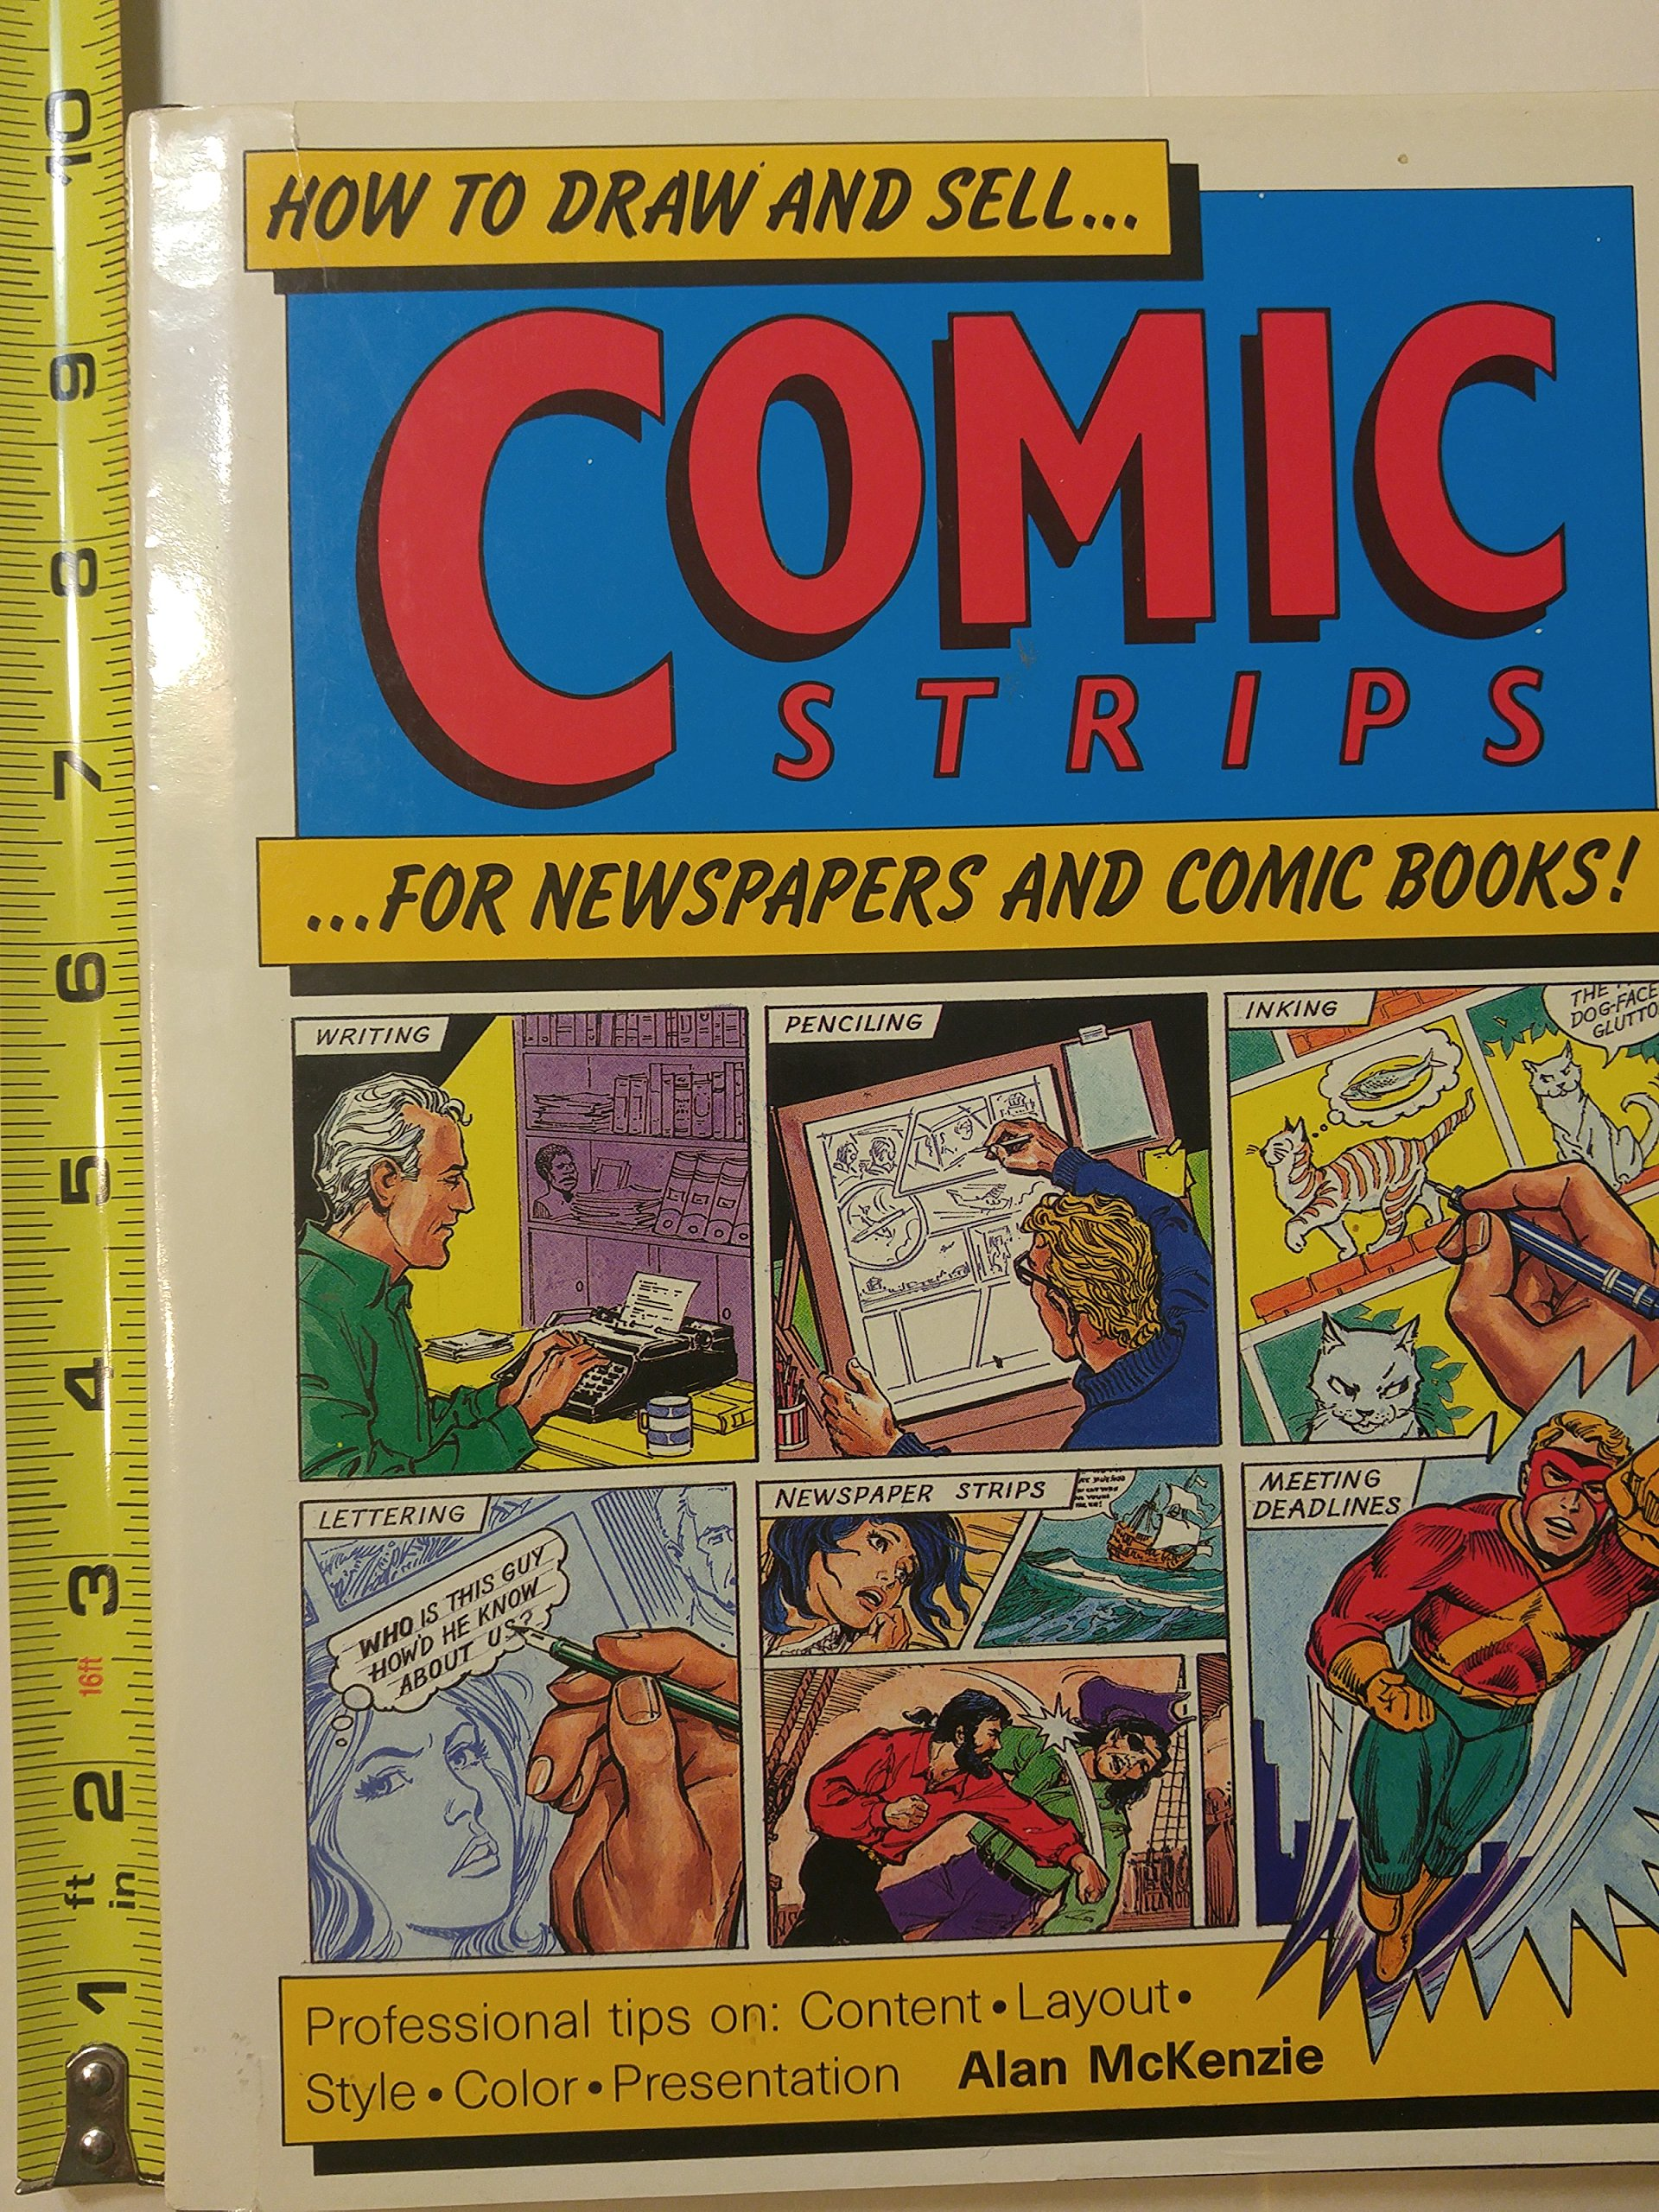 How To Draw And Sell Comic Strips For Newspapers And Comic Books Mckenzie Alan 9780891342144 Amazon Com Books